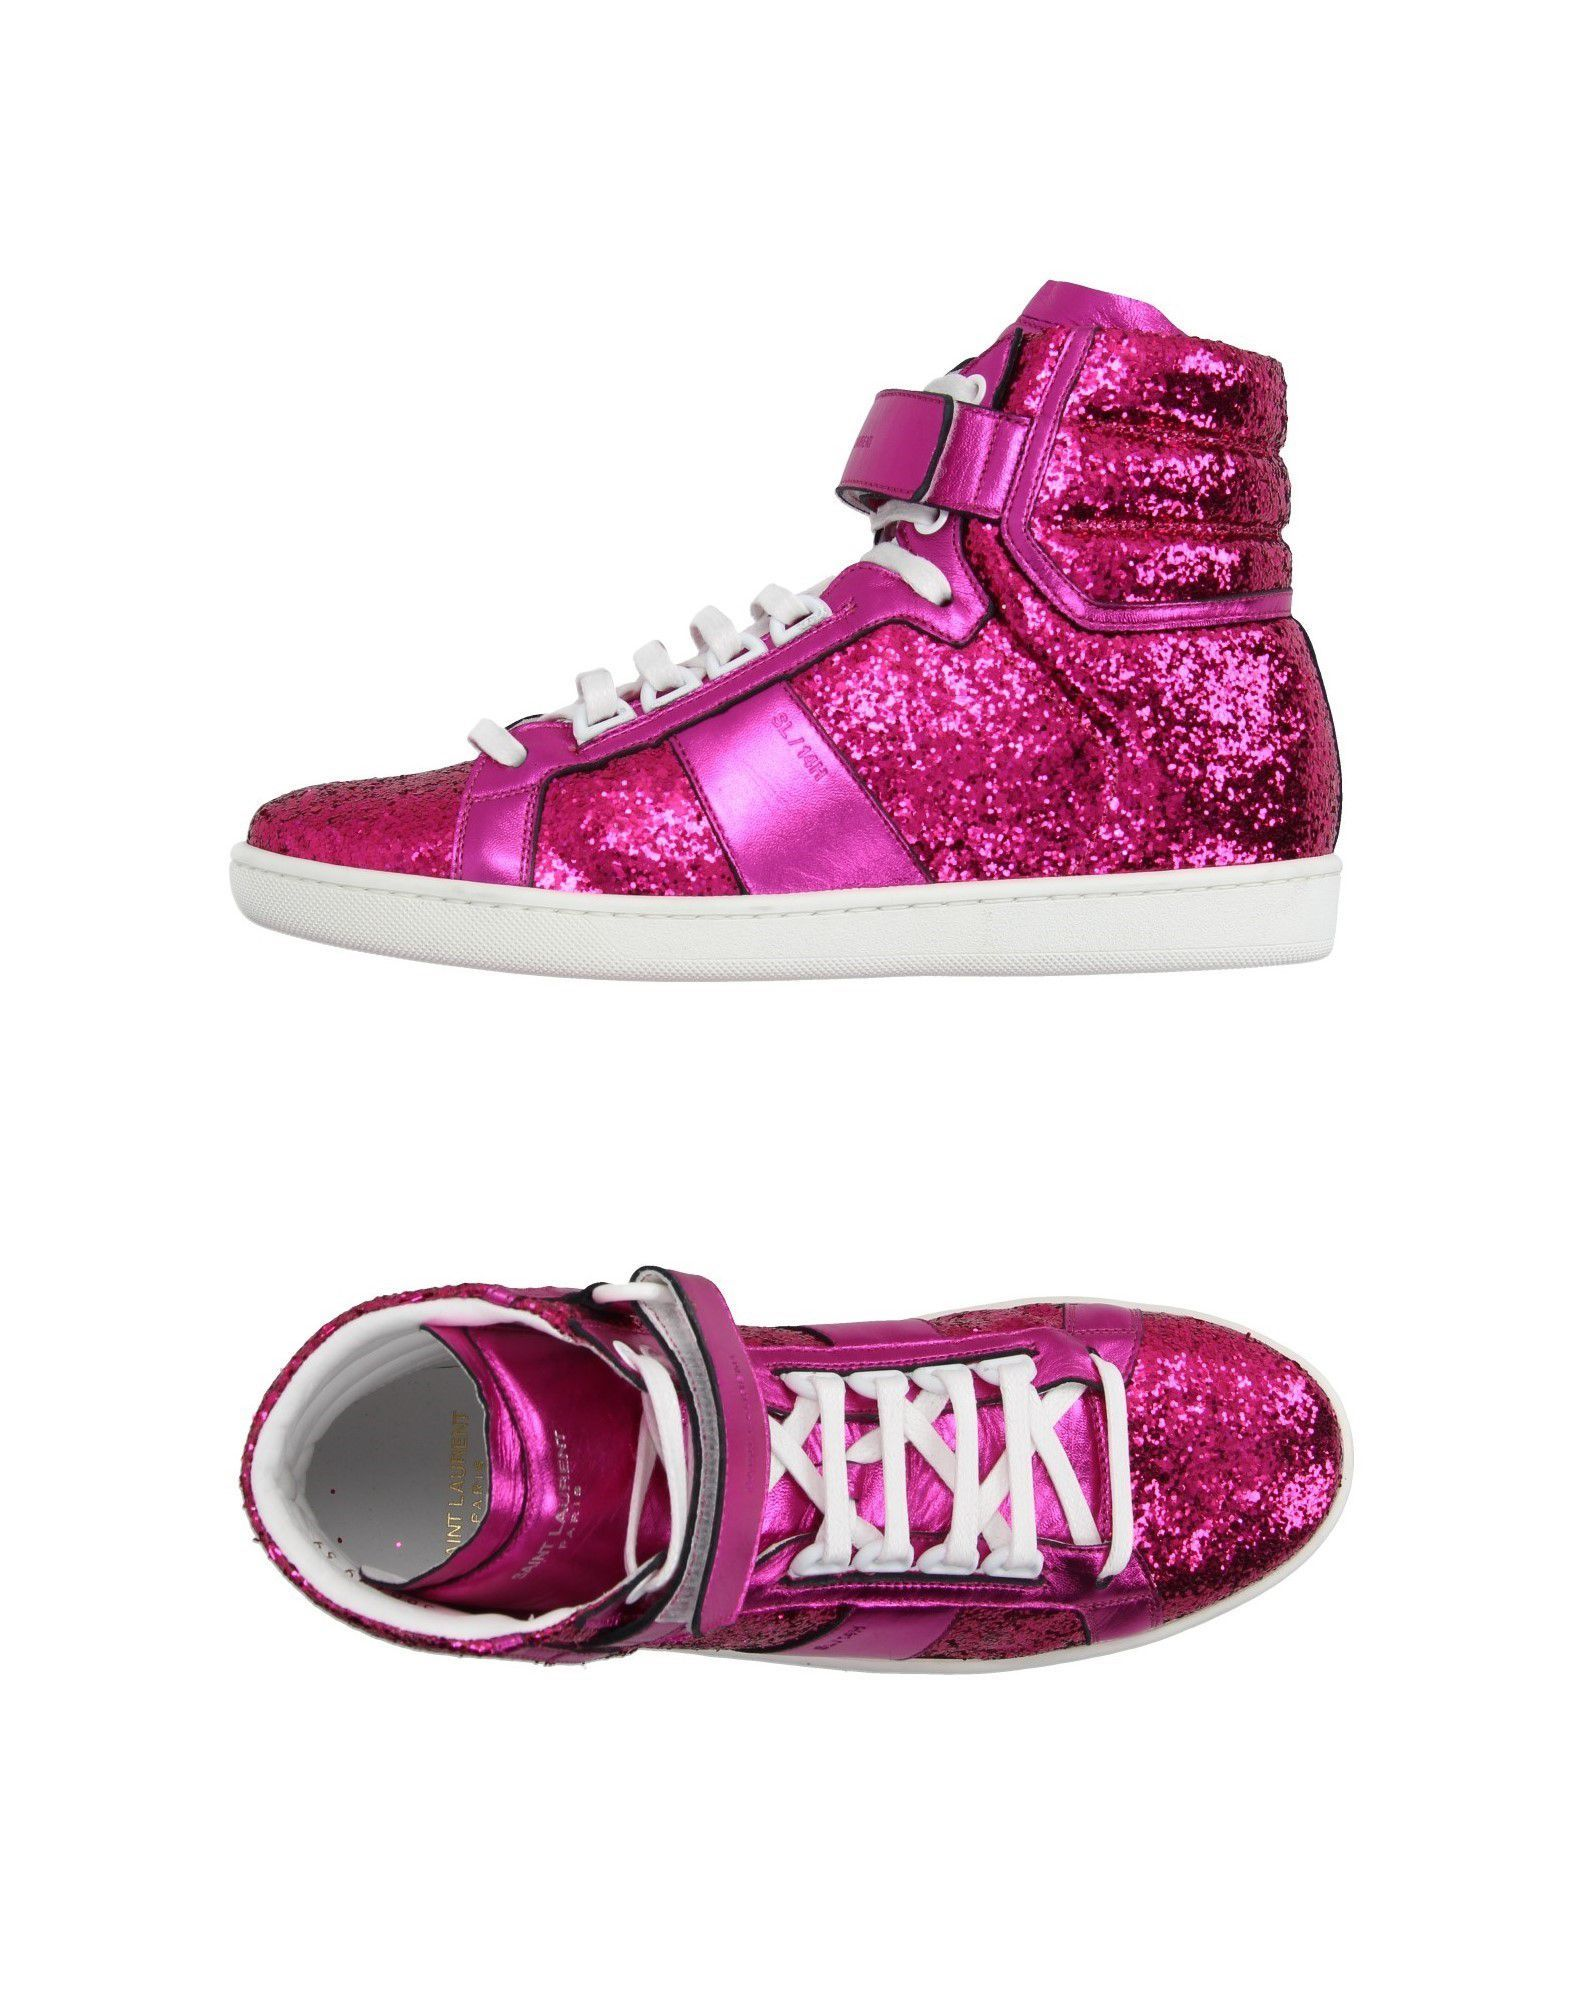 88f433f5ae7 Saint Laurent Women High-Tops on YOOX. The best online selection of  High-Tops Saint Laurent. YOOX exclusive items of Italian and international  designers ...